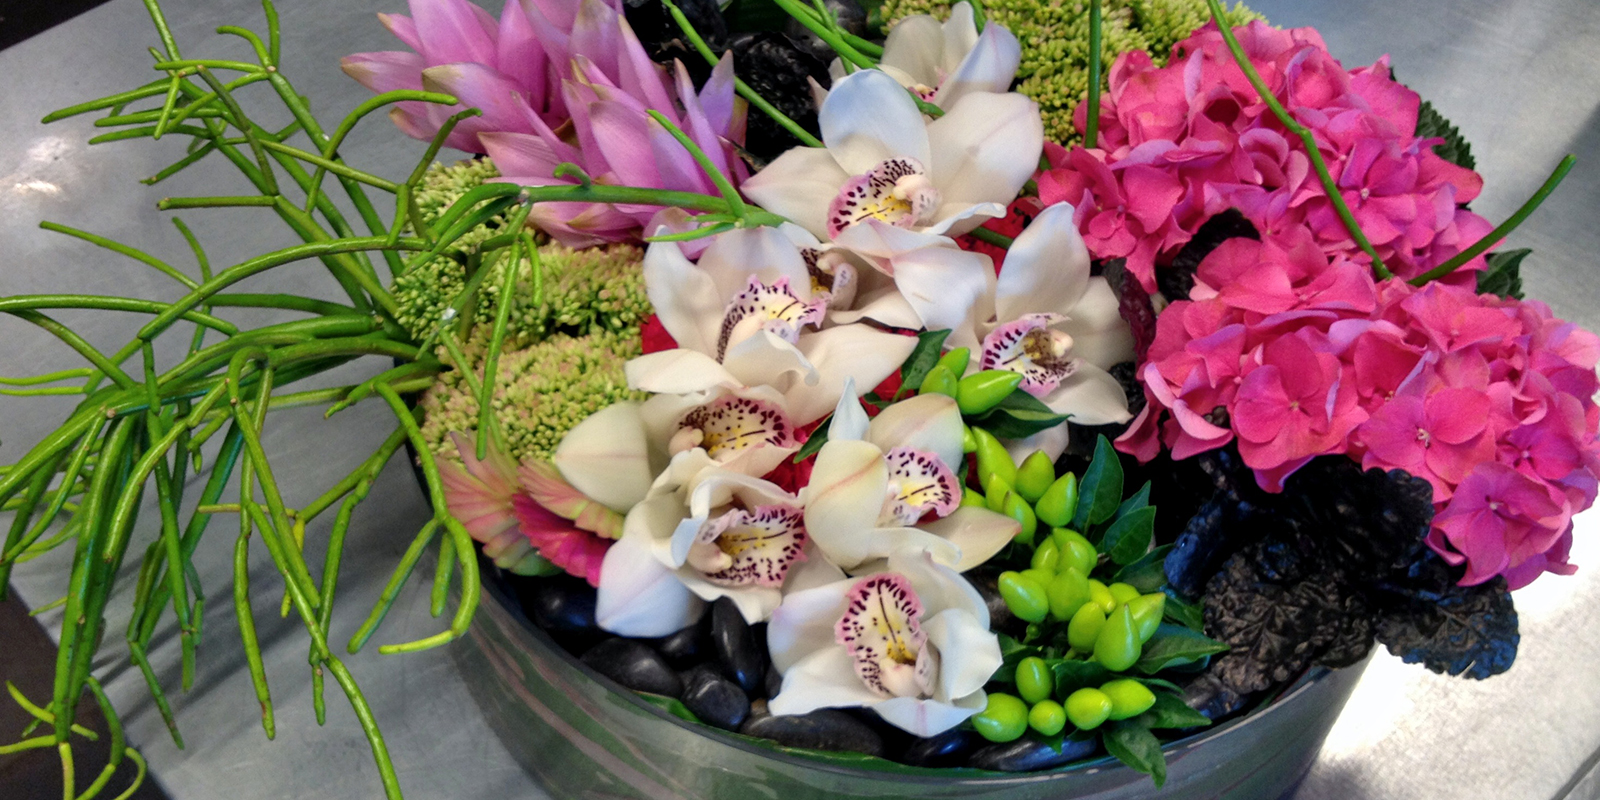 Pink and green flower arrangements for corporate spaces or events